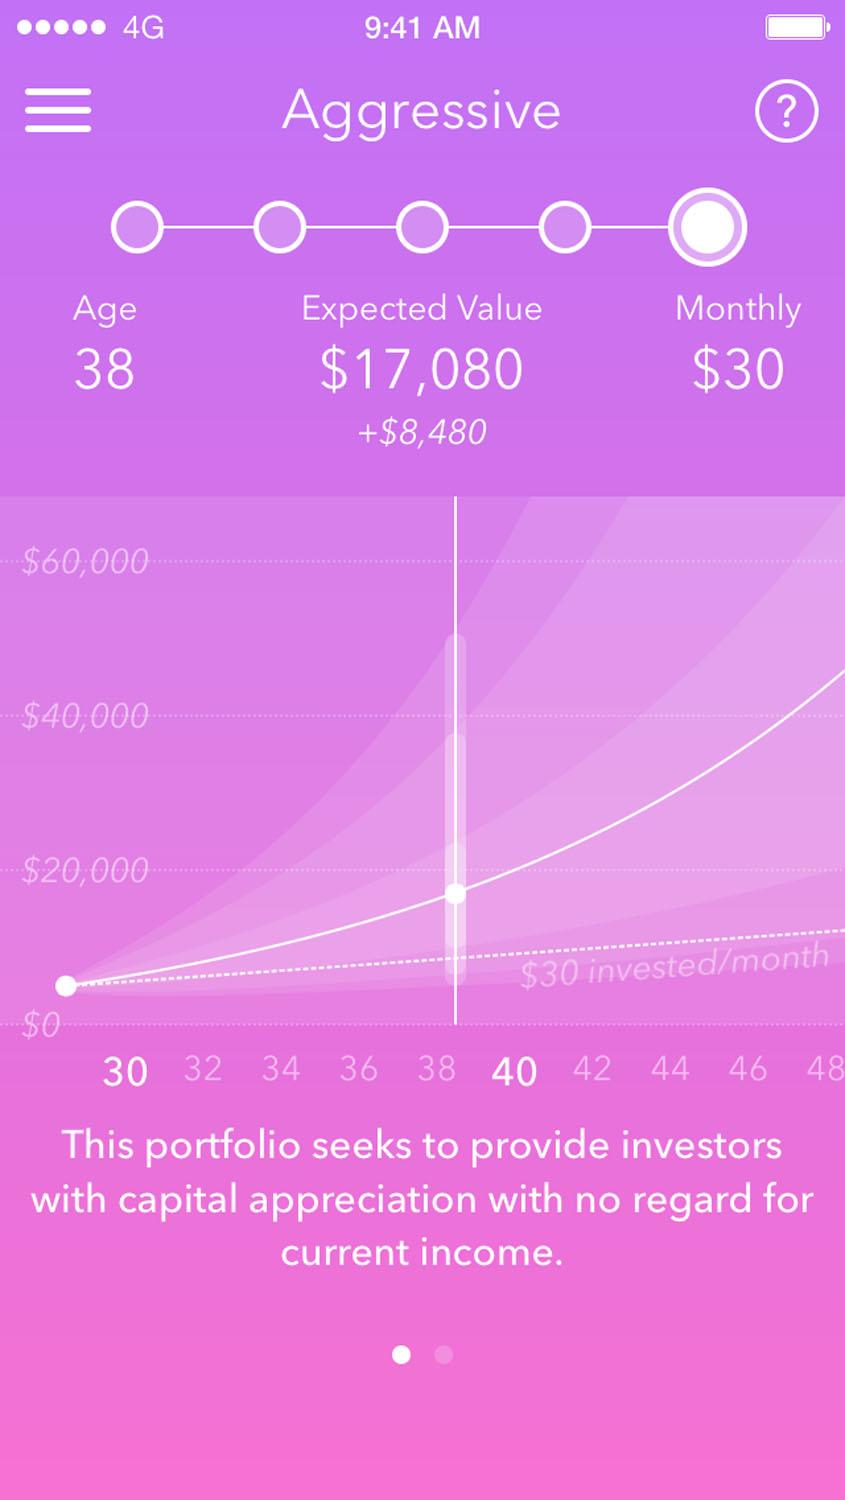 A+new+mobile+application+claims+to+have+taken+the+confusion+and+difficulty+out+of+investing.+Acorns%2C+a+free+mobile+app%2C+allows+users+to+make+micro-investments+by+automatically+investing+their+spare+change+in+the+stock+market.The+startup+requires+users+to+link+their+credit+cards+to+the+application.